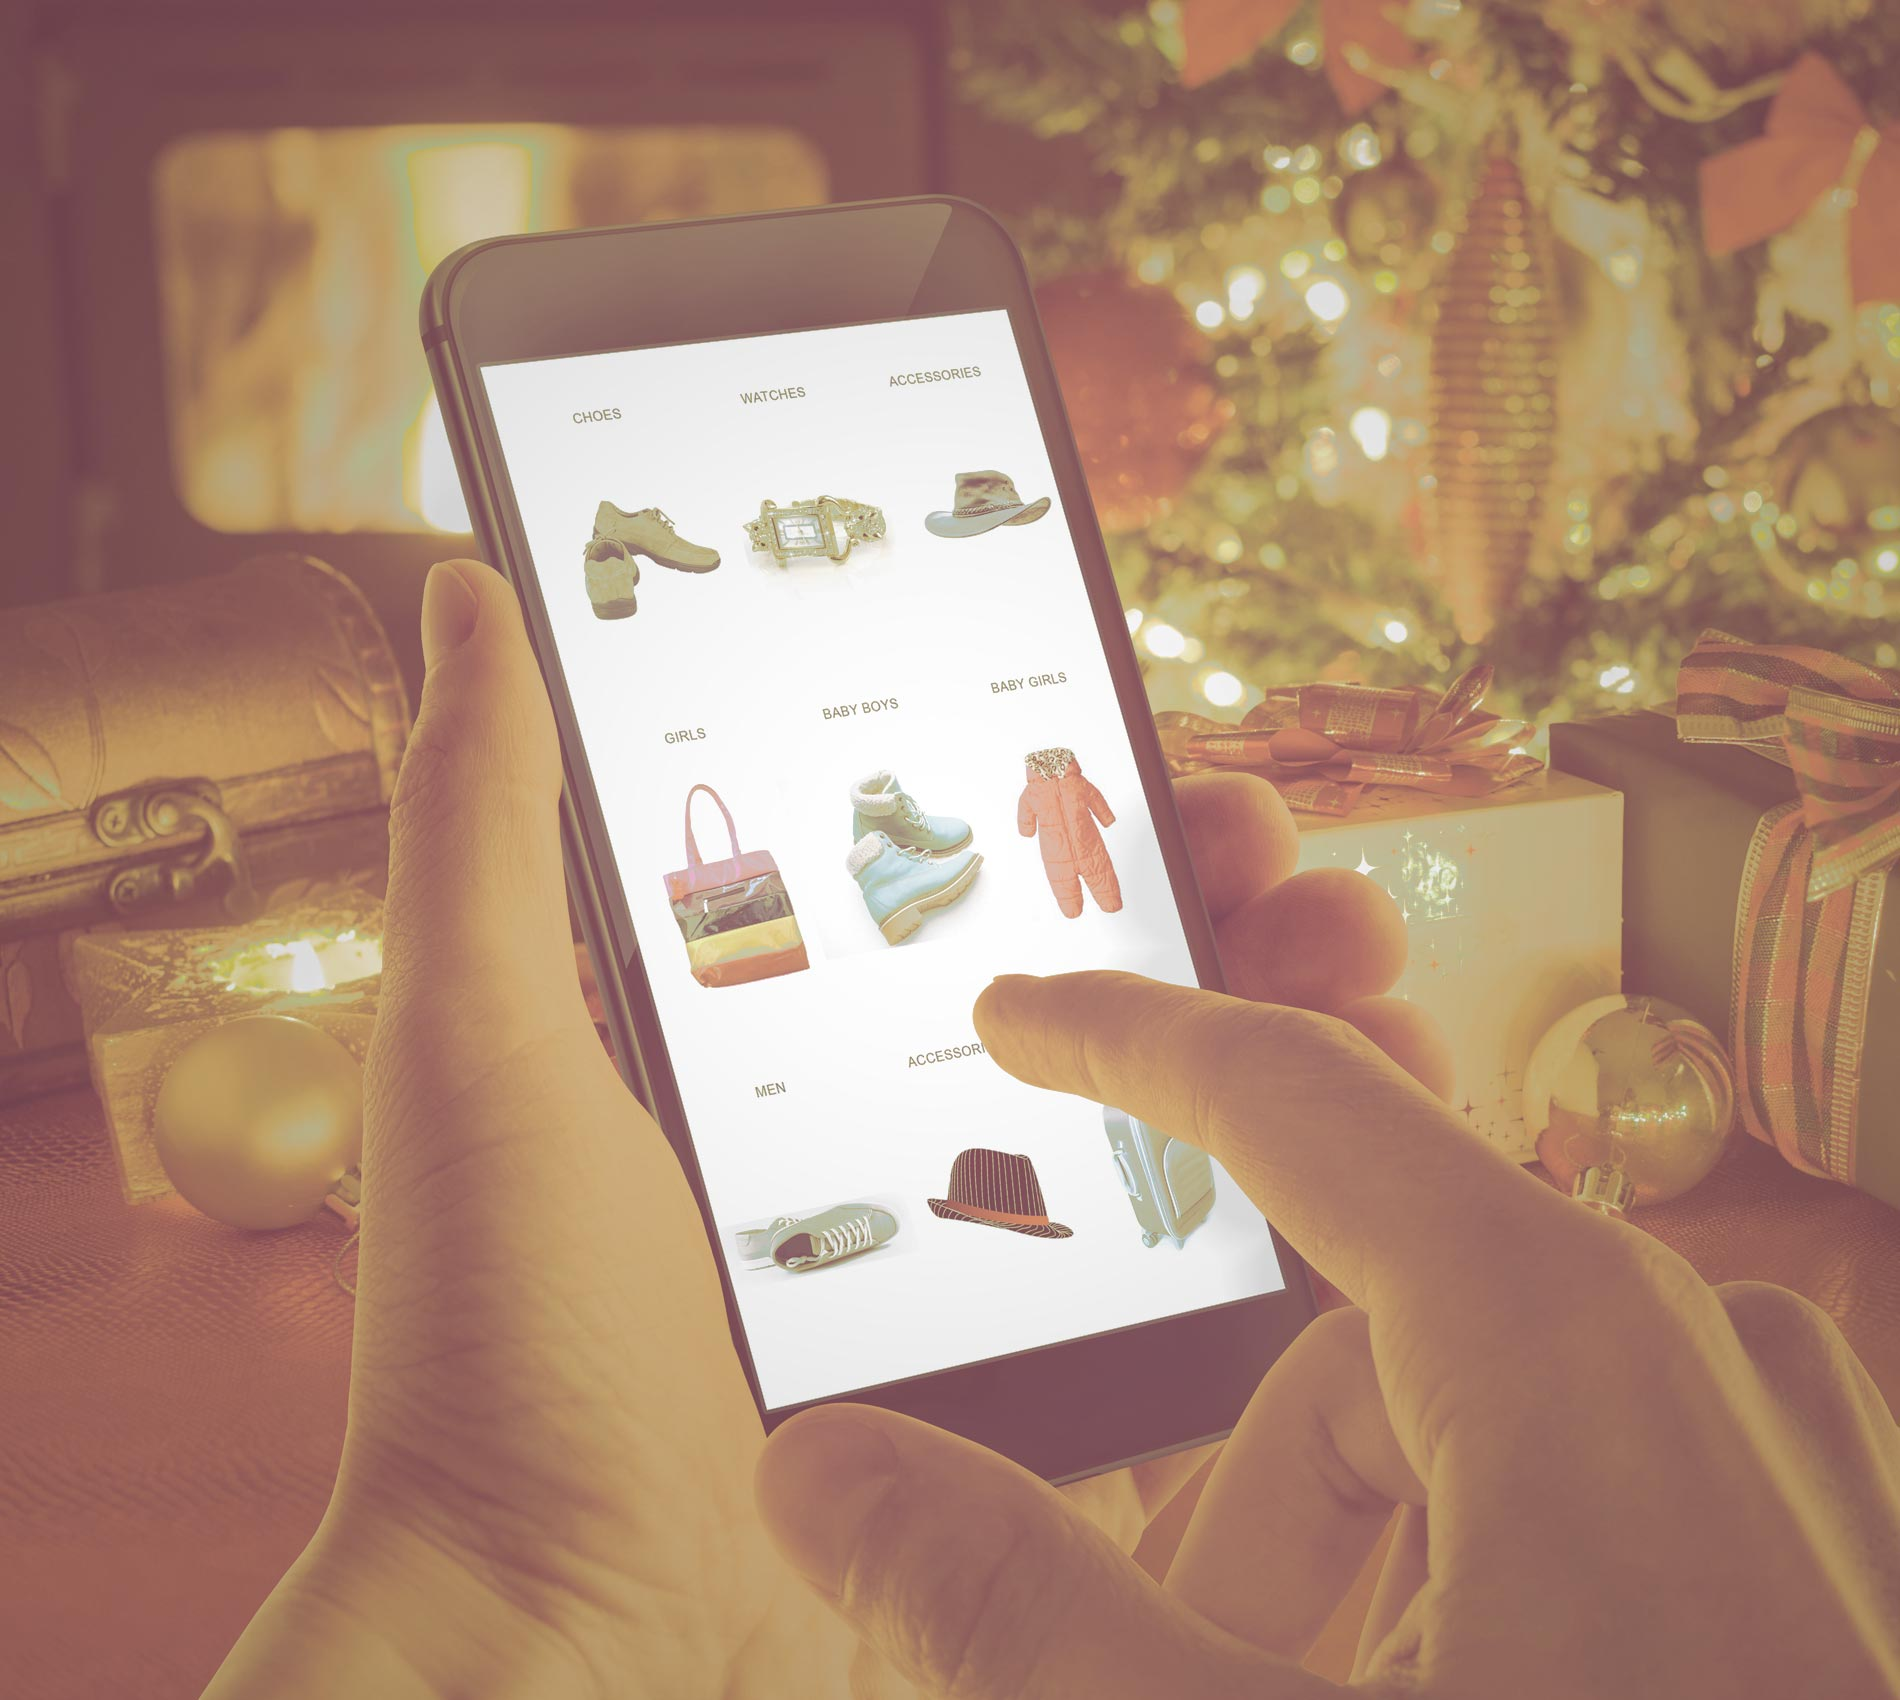 Christmas shopping in Brazil: 41% will buy from ecommerce stores